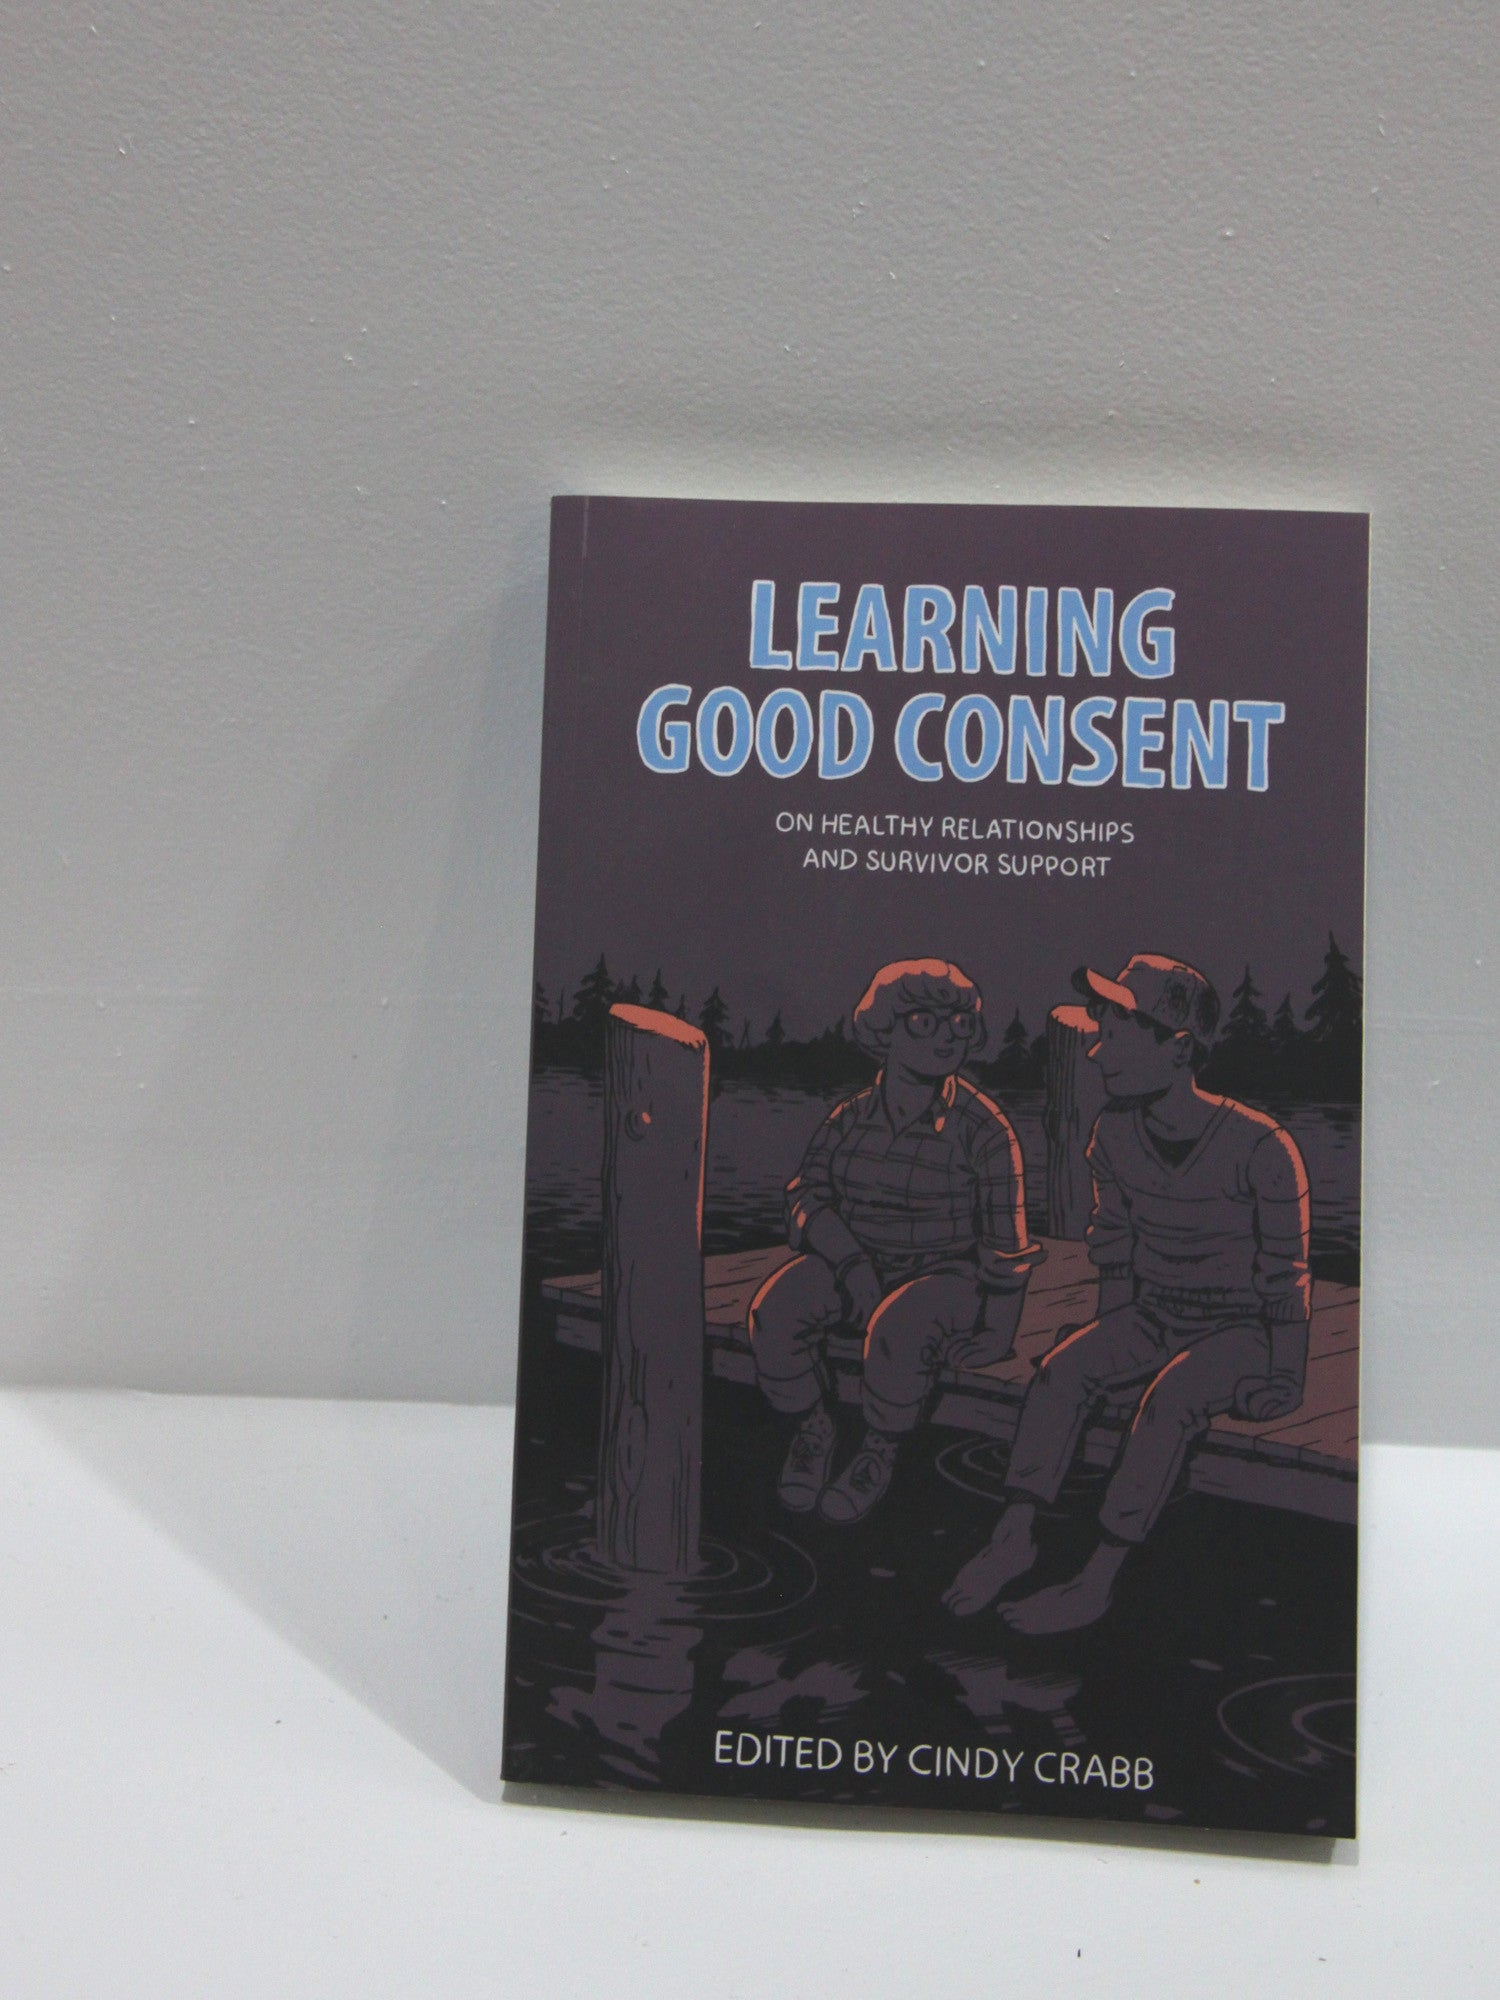 Learning Good Consent | Microcosm Publishing at Sustain - Gallery and Shop - Chicago, IL